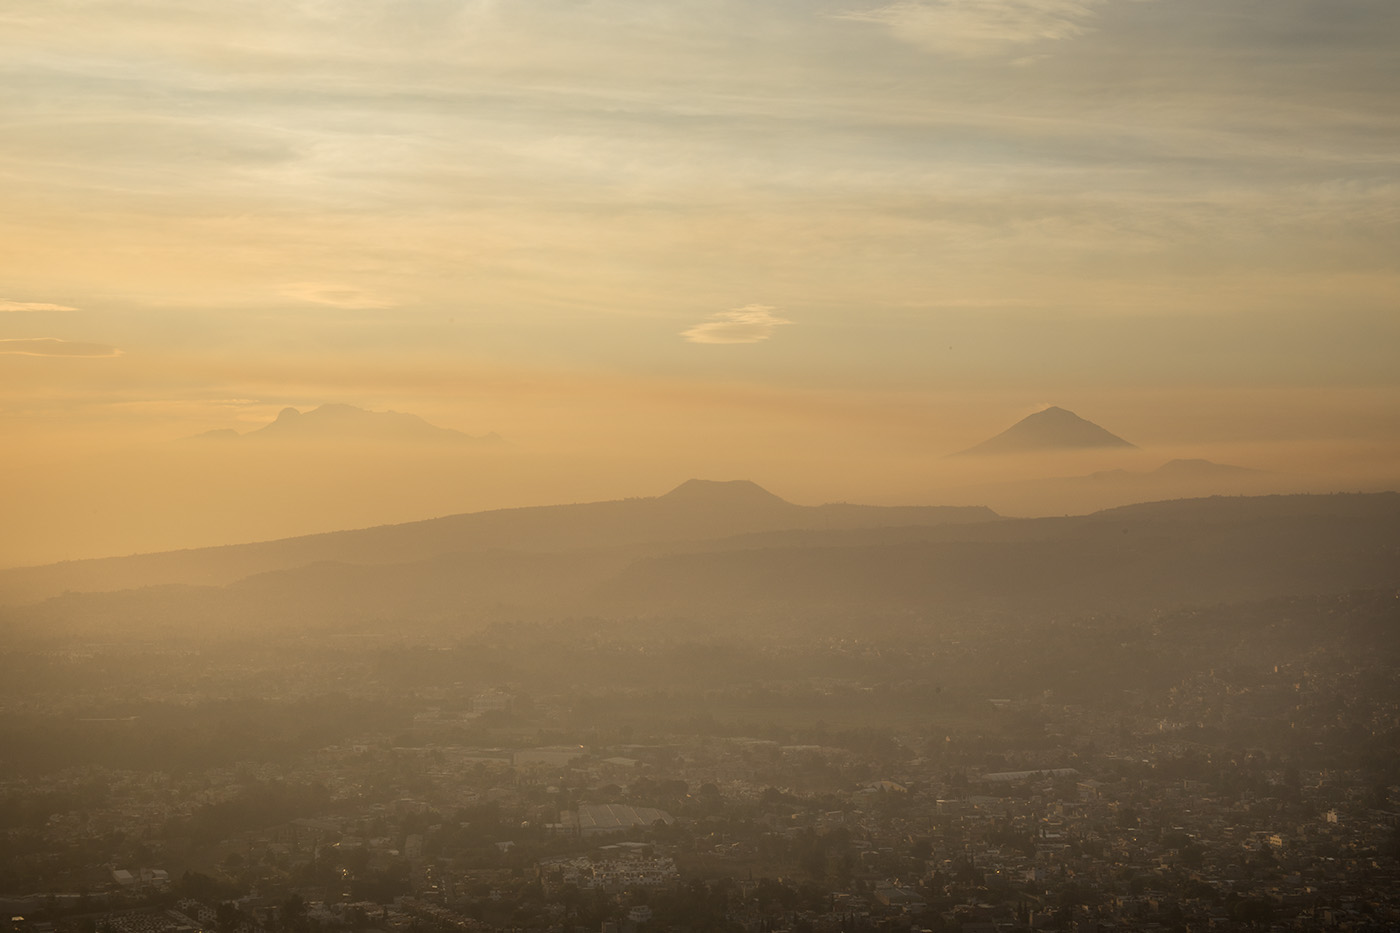 Iztaccihuatl, Popocatepetl and Teuhtli volcanos from the top of the Xochitepec during sunrise.